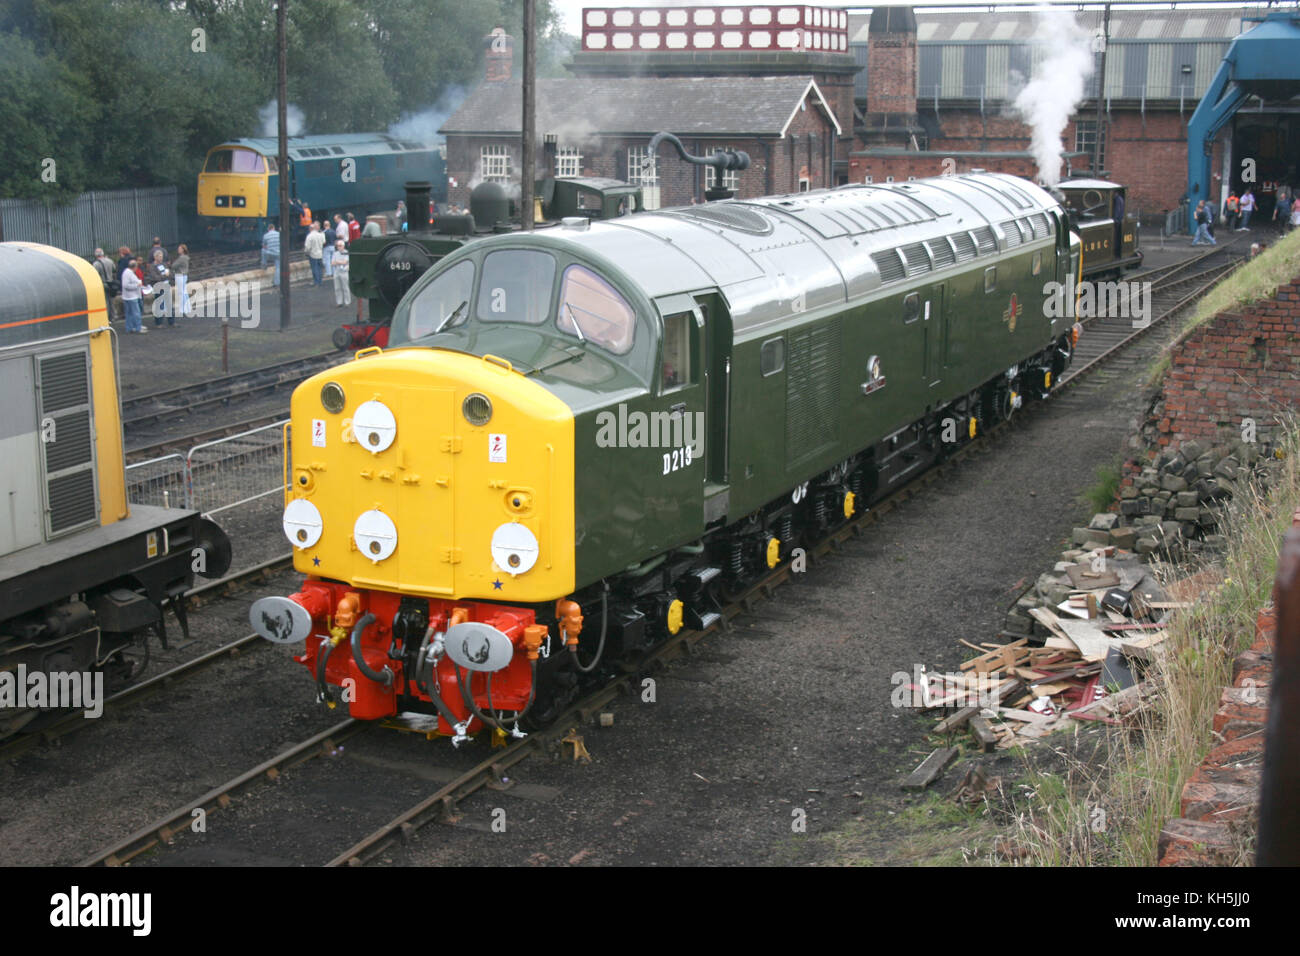 Rail Freight Uk Depot Stock Photos Amp Rail Freight Uk Depot